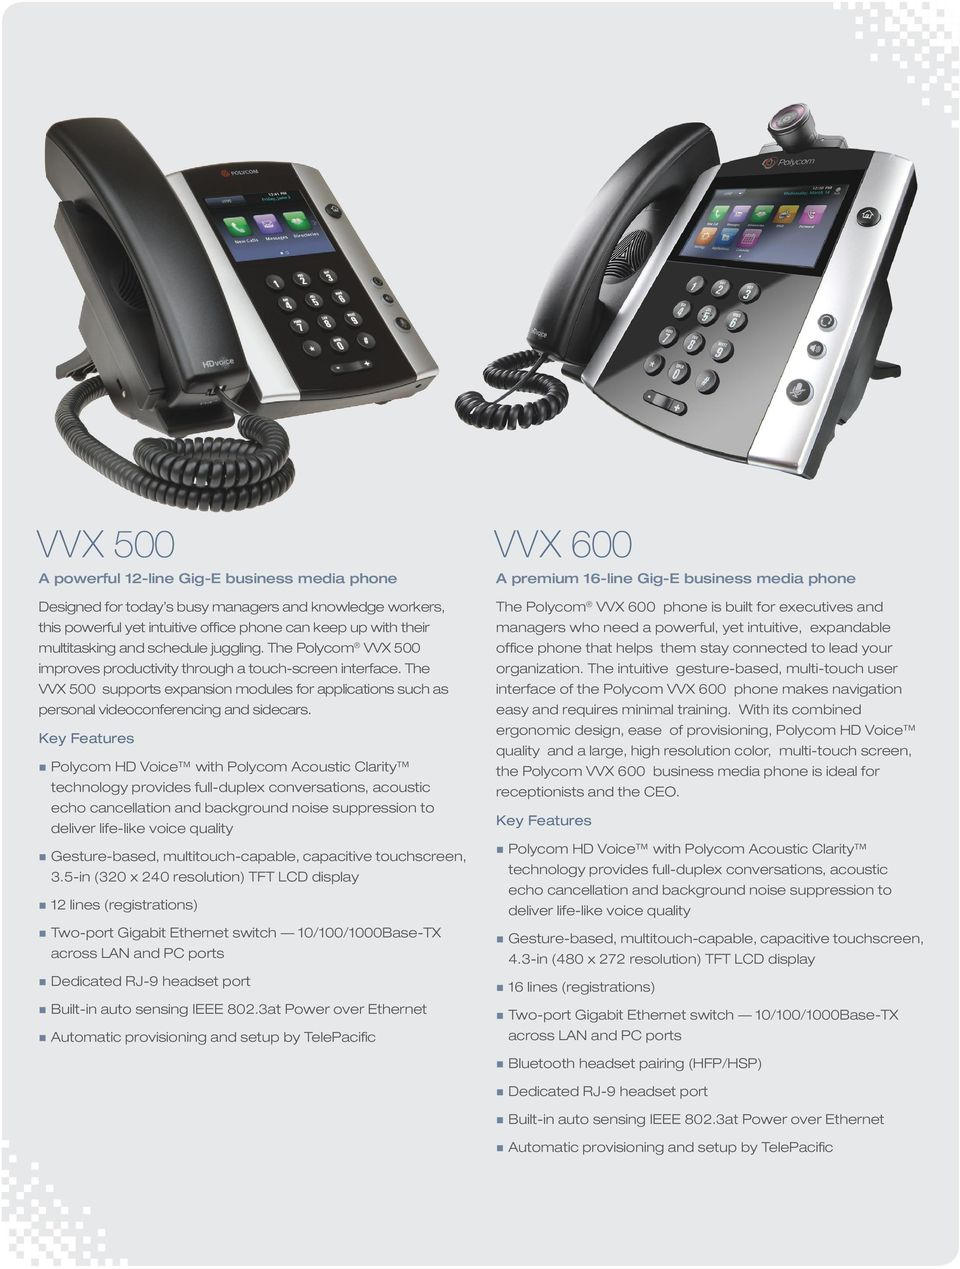 The VVX 500 supports expansion modules for applications such as personal videoconferencing and sidecars. Gesture-based, multitouch-capable, capacitive touchscreen, 3.